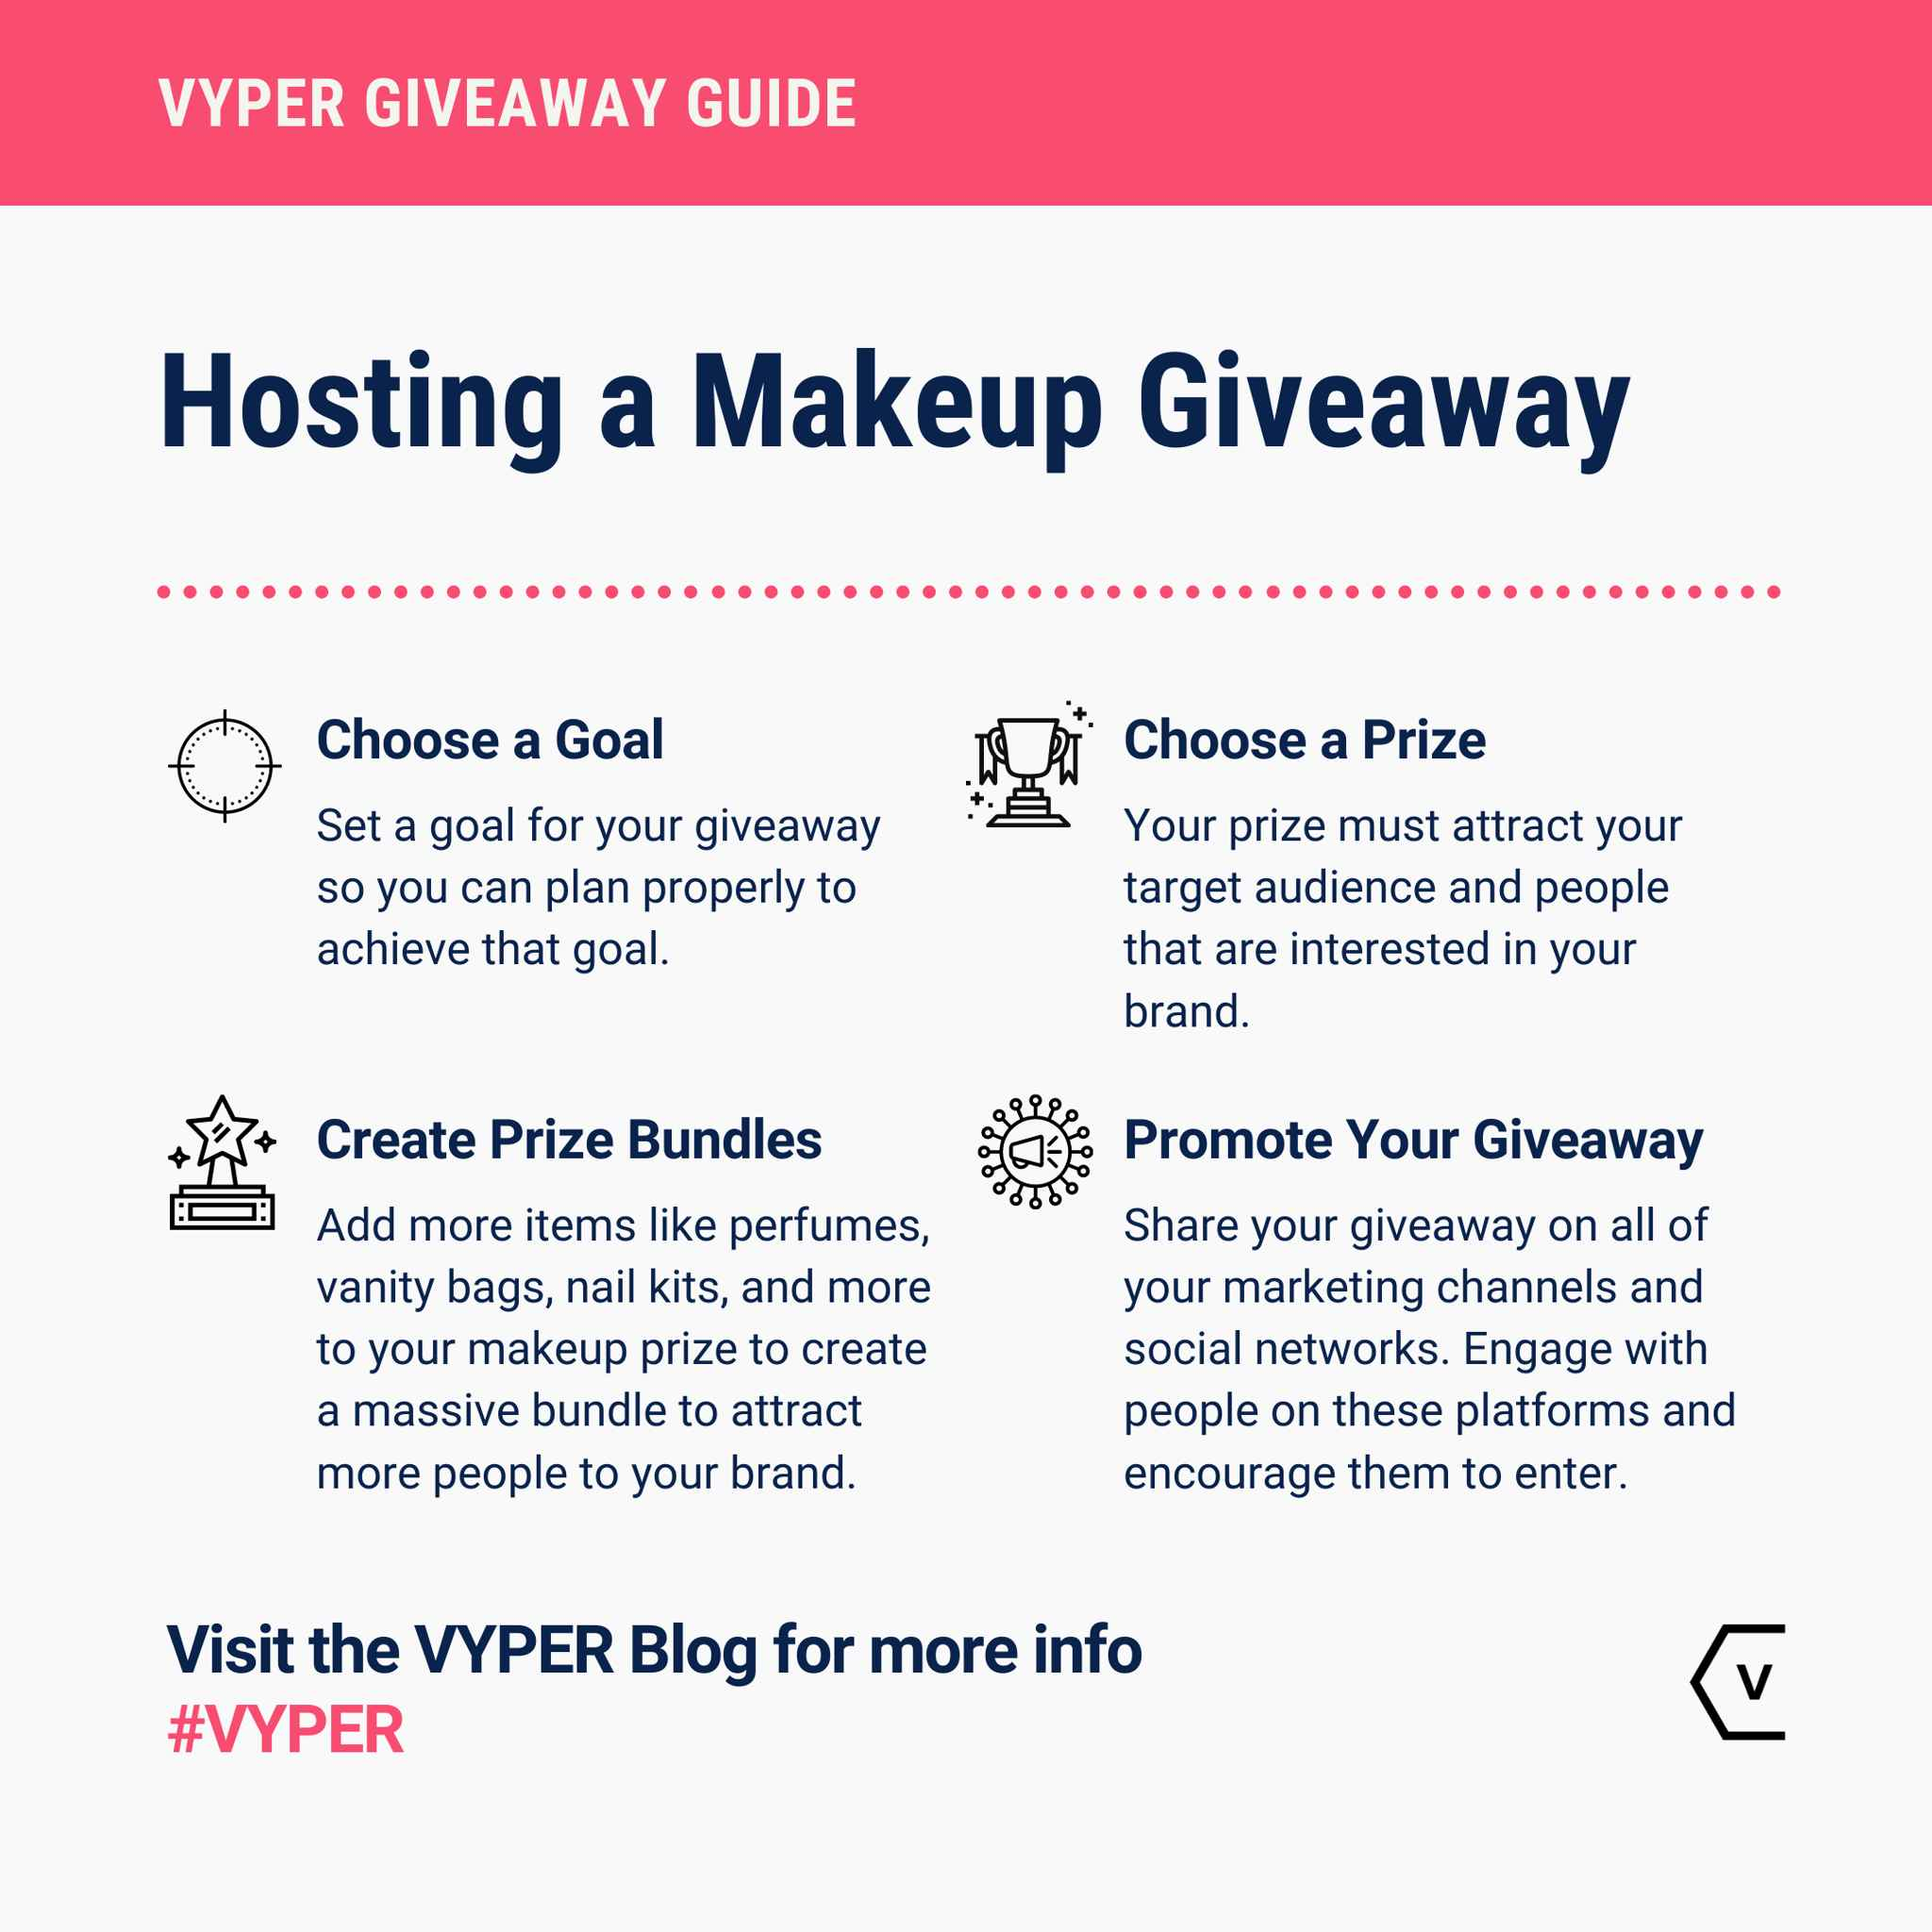 Hosting a Makeup Giveaway Infographic